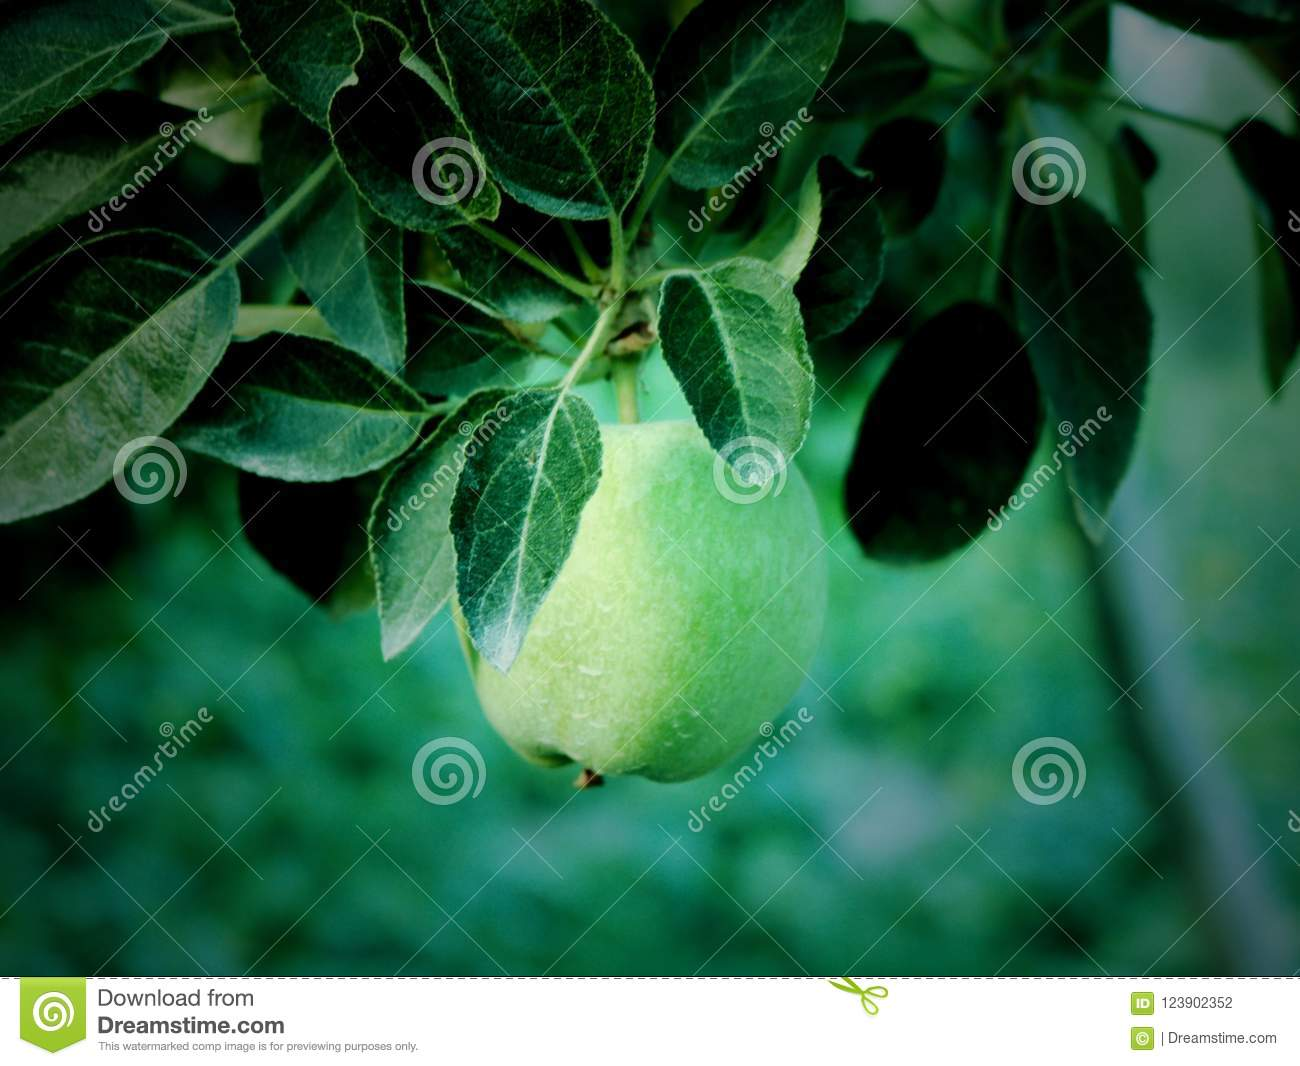 Little Green Apples In Kashmir Valley India